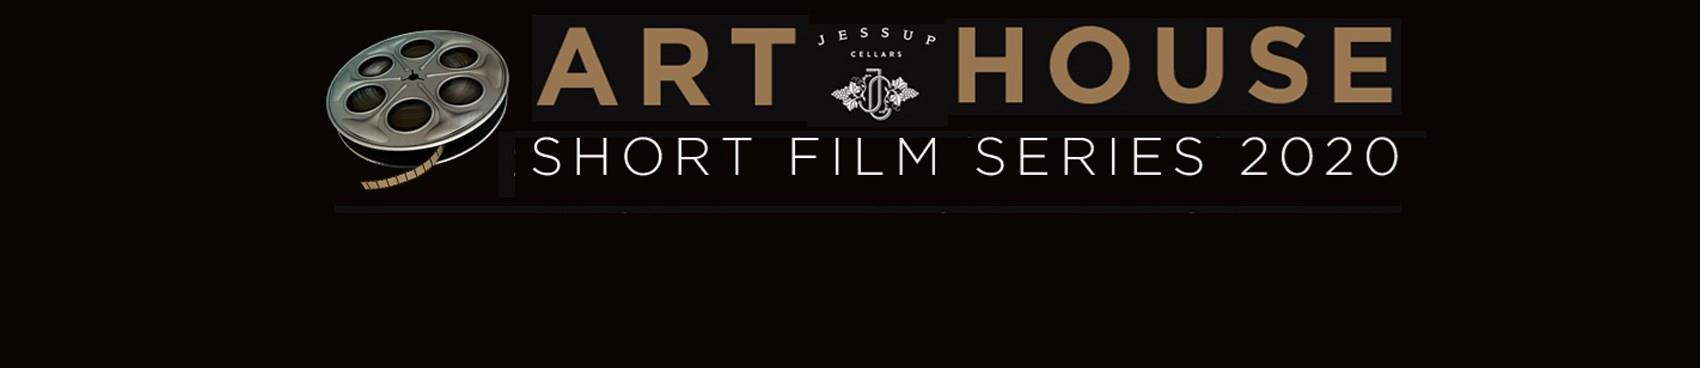 Purchase Tickets to Art House Short Film Series – Feb 8 at Jessup Cellars on CellarPass